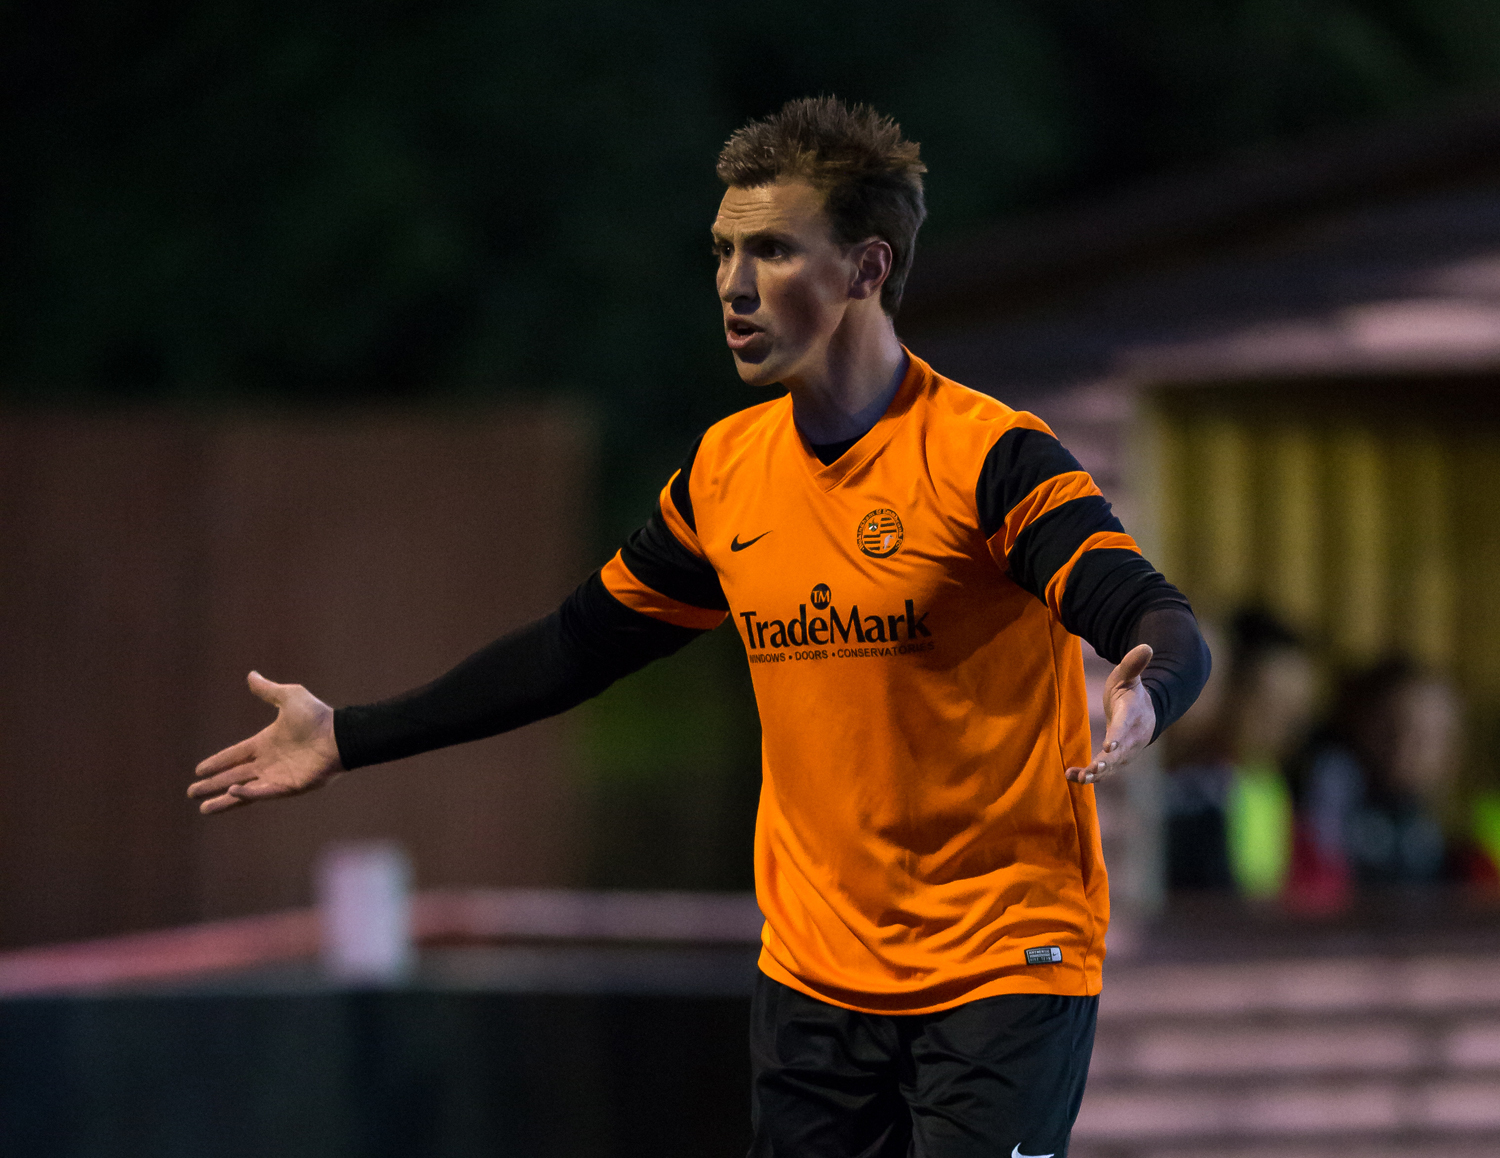 Midweek in the Hellenic: Wokingham defeat and Poynter leads the way